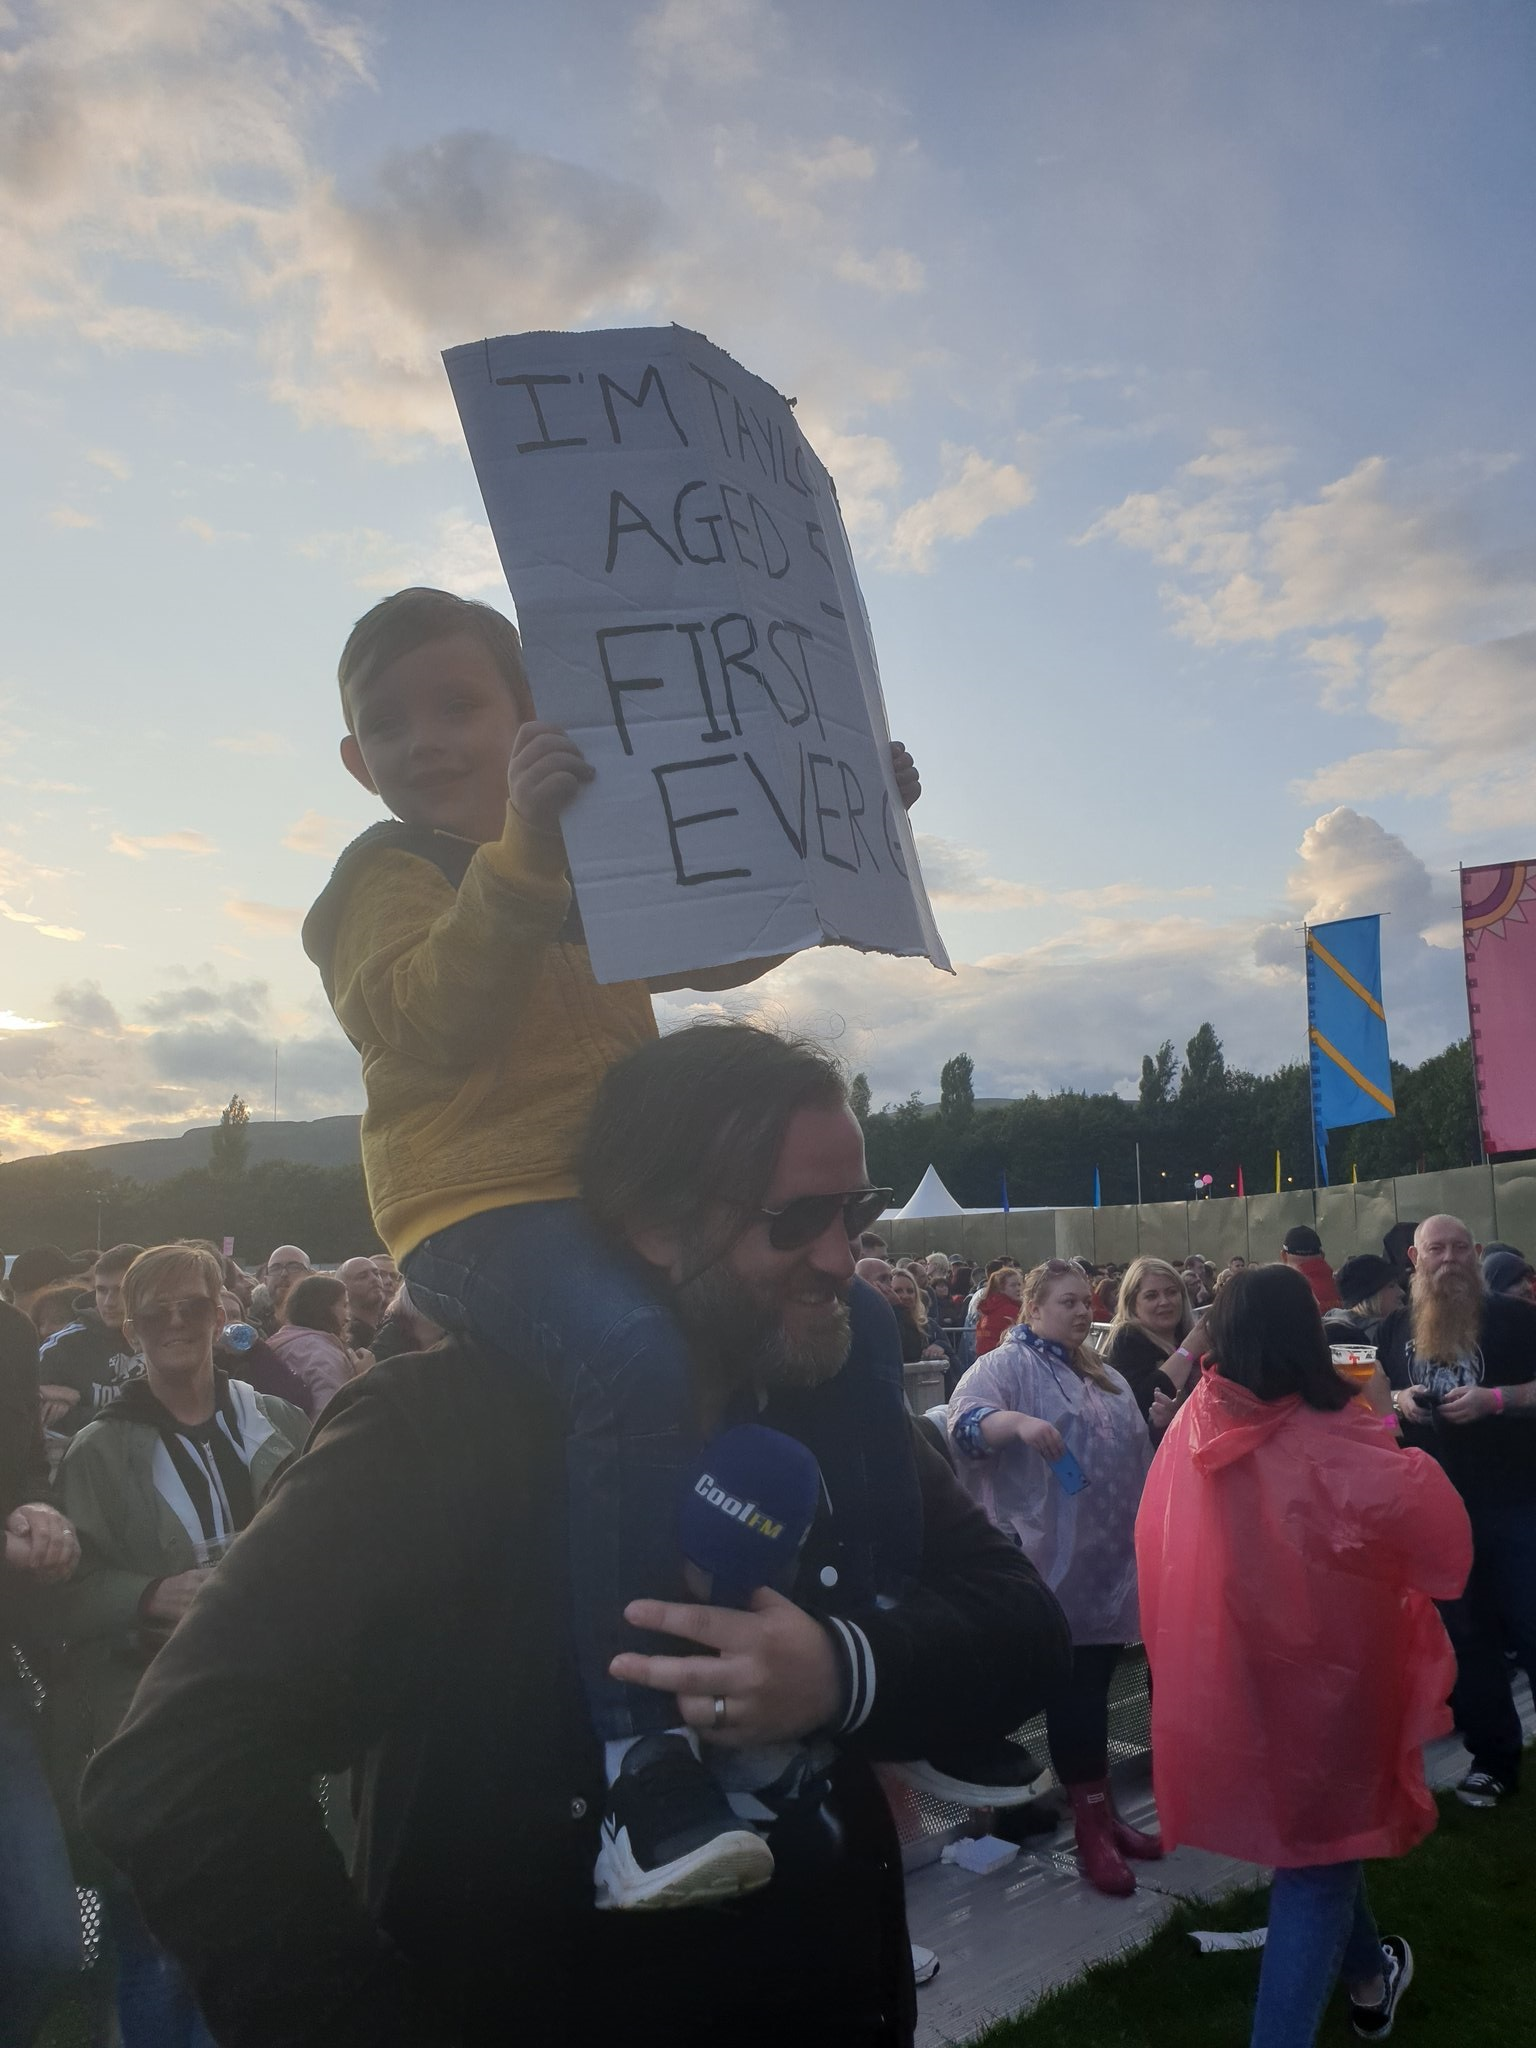 Taylor Blackburn, 5, holds a sign up that reads 'I'm Taylor Aged 5 First Ever Gig'